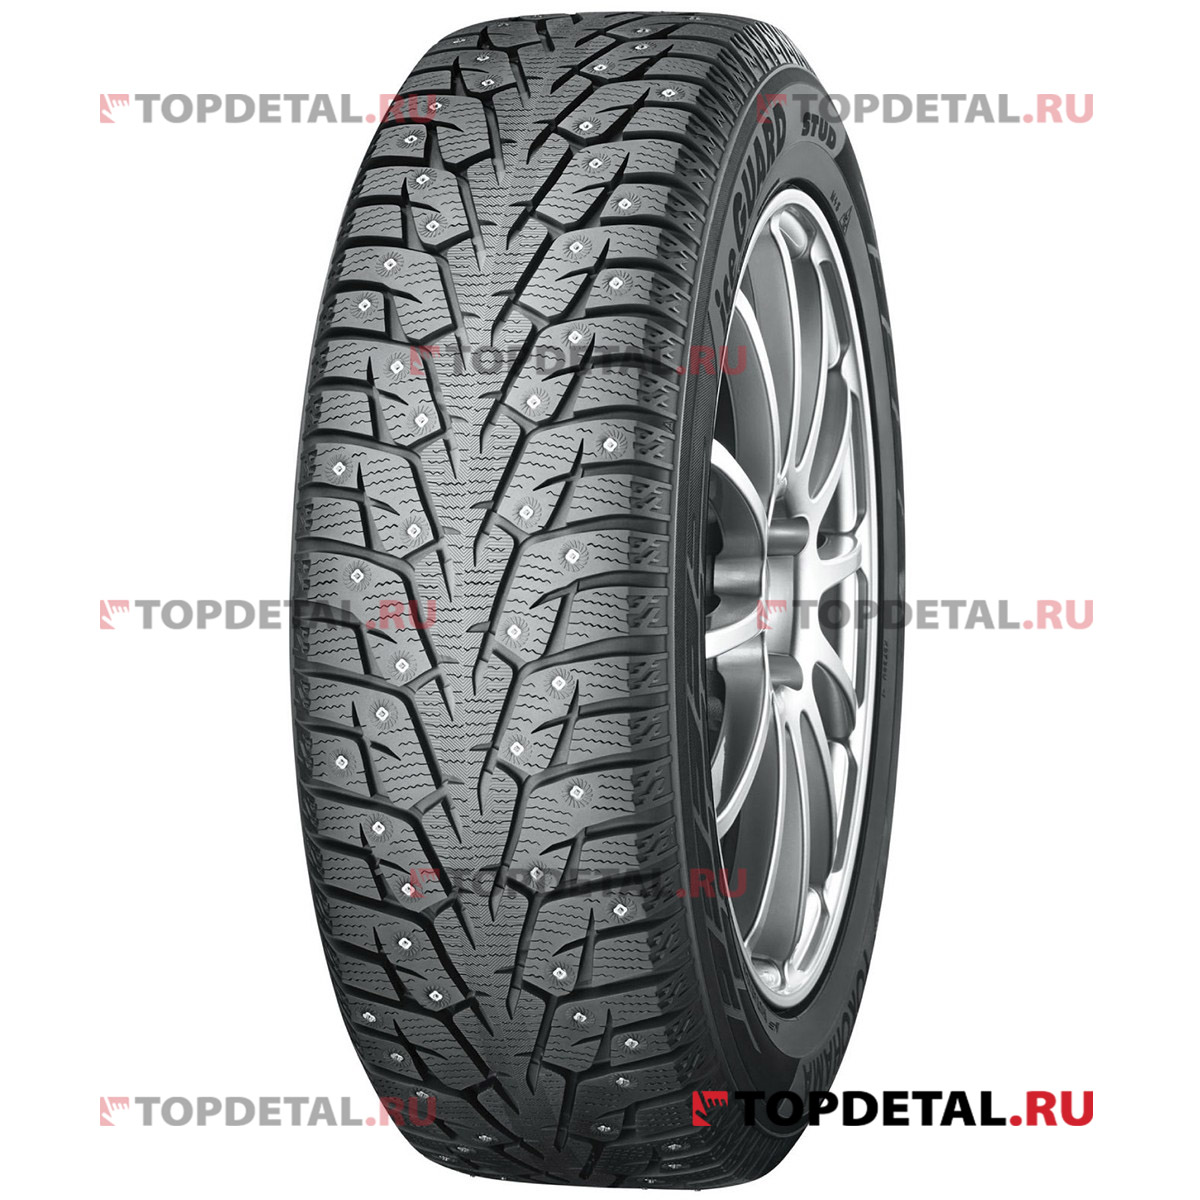 Шина Yokohama Ice Guard IG55 215/60 R17 100Т, зимняя,  шип.